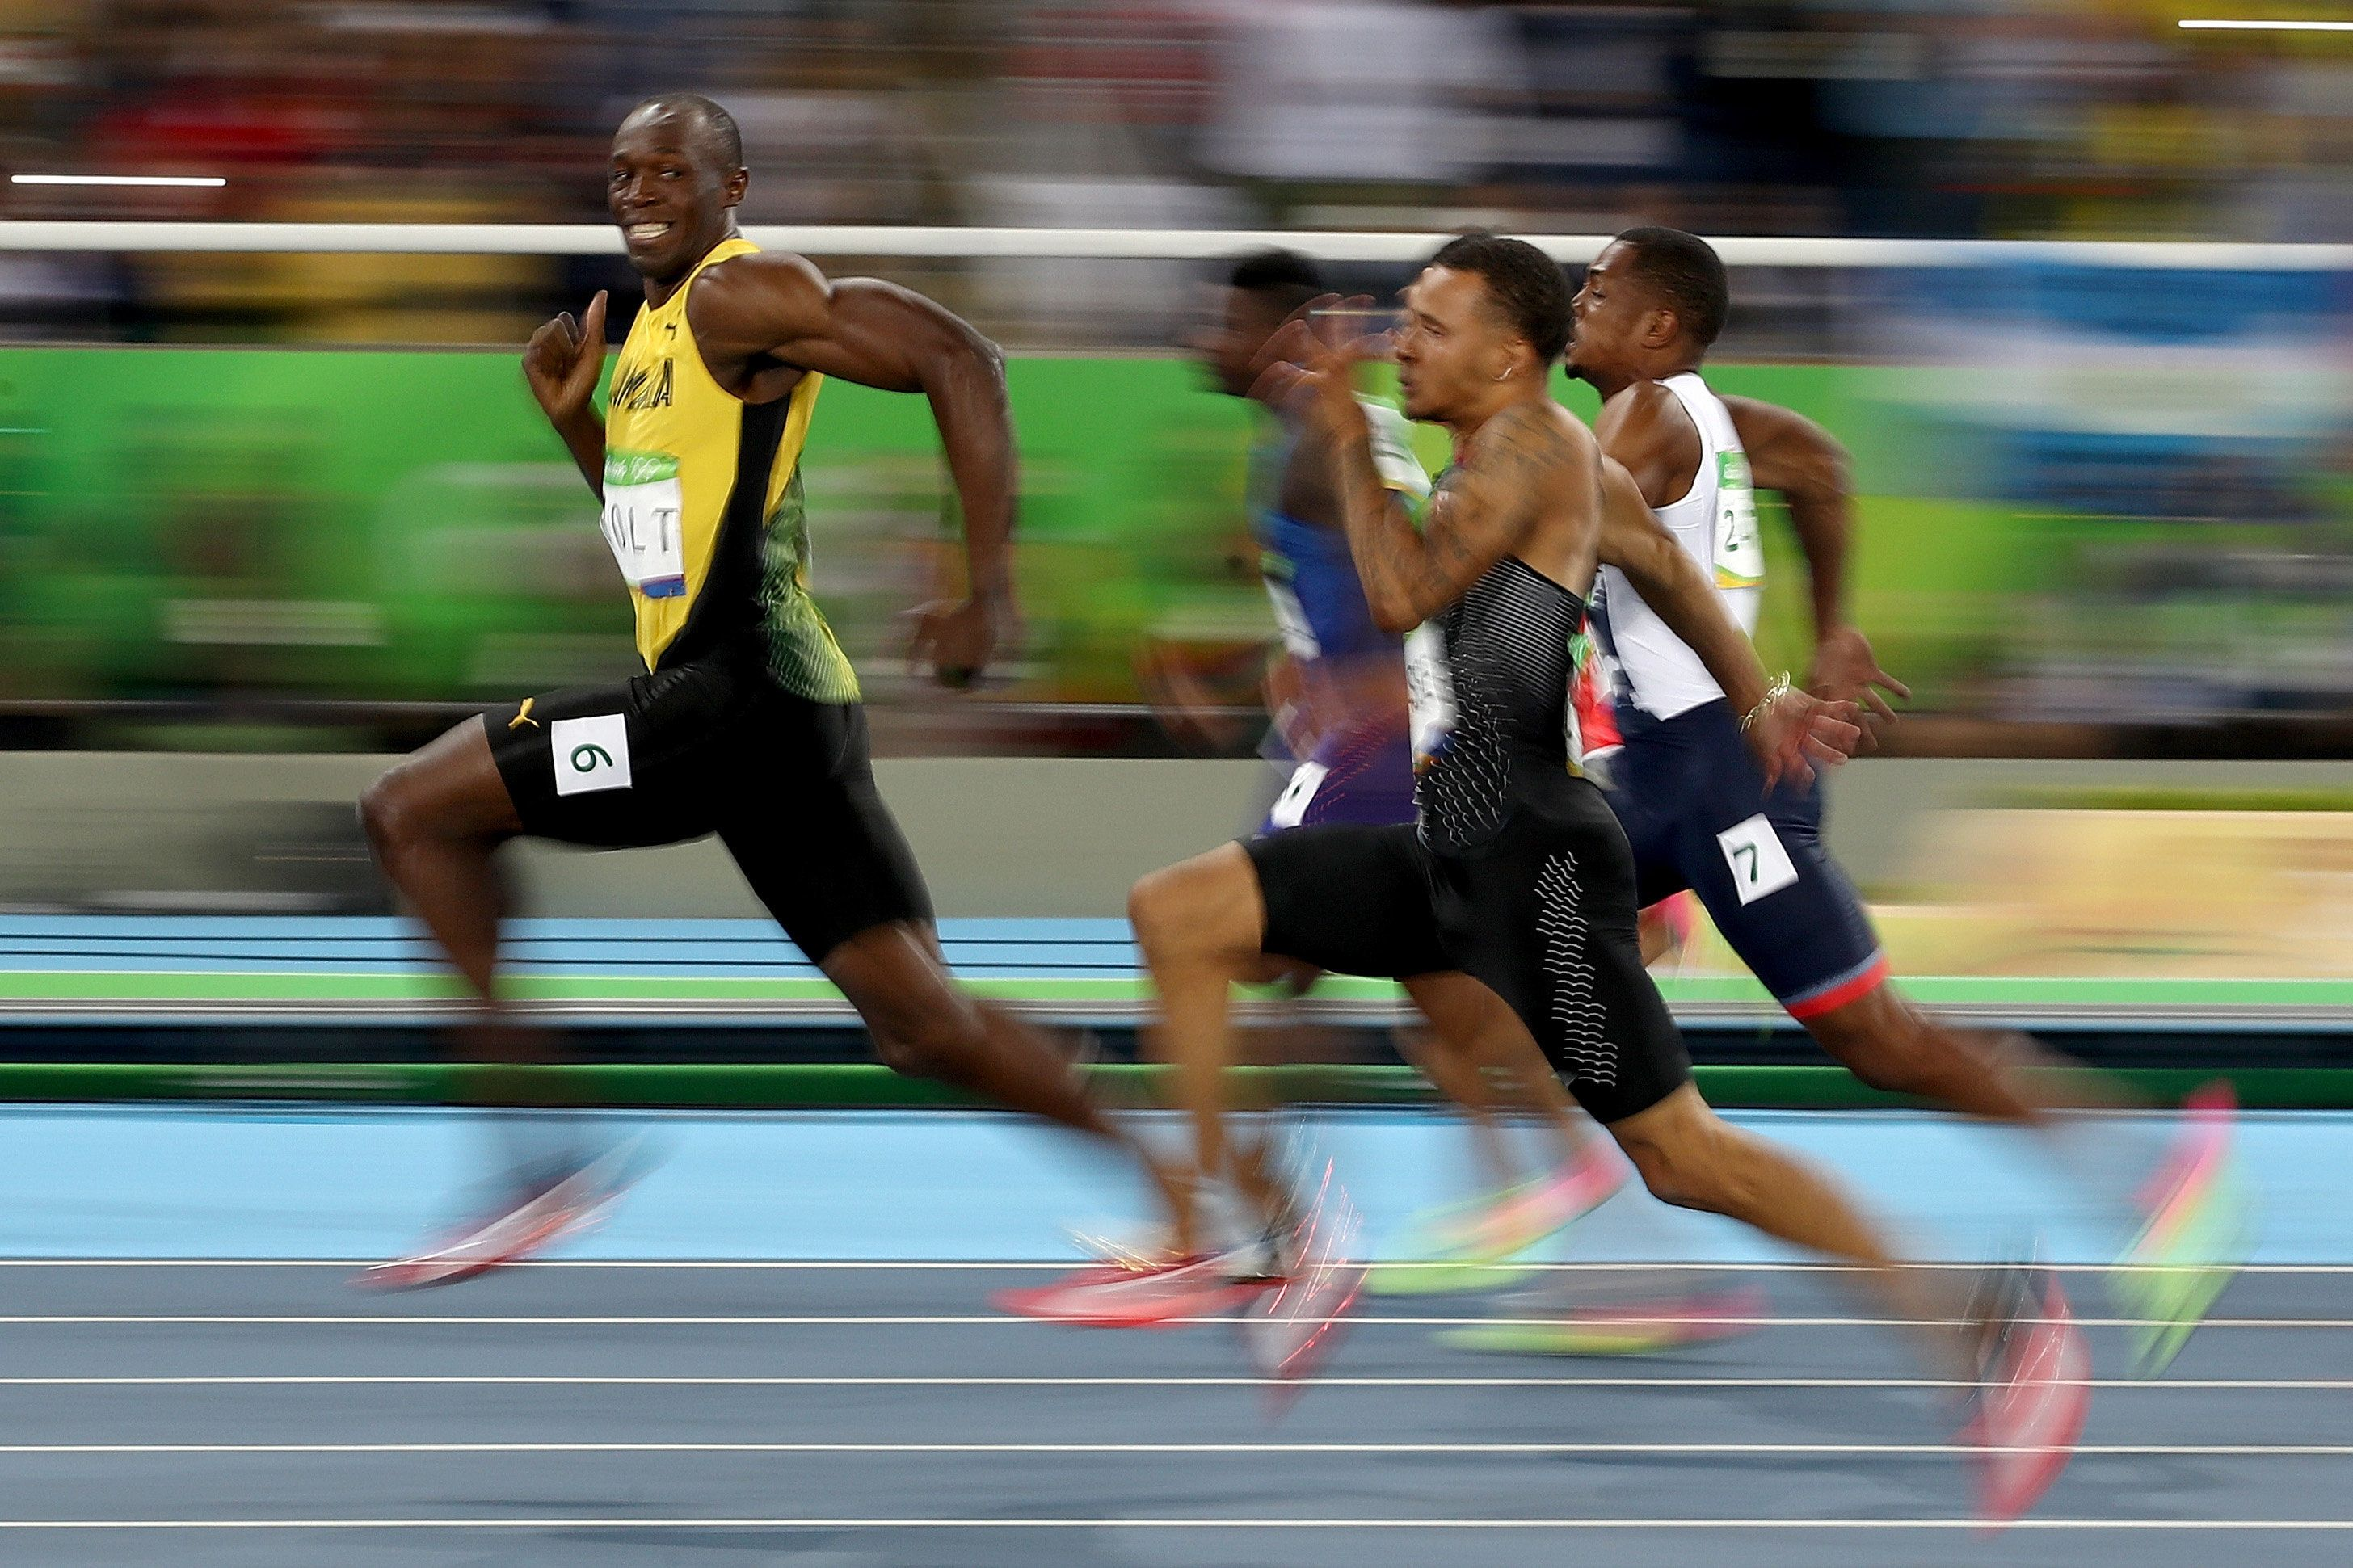 Bolt's meme-worthy grin during Sunday evening's 100-meter dash semi-finals. He cruised ahead of American Justin Gatlin and ot